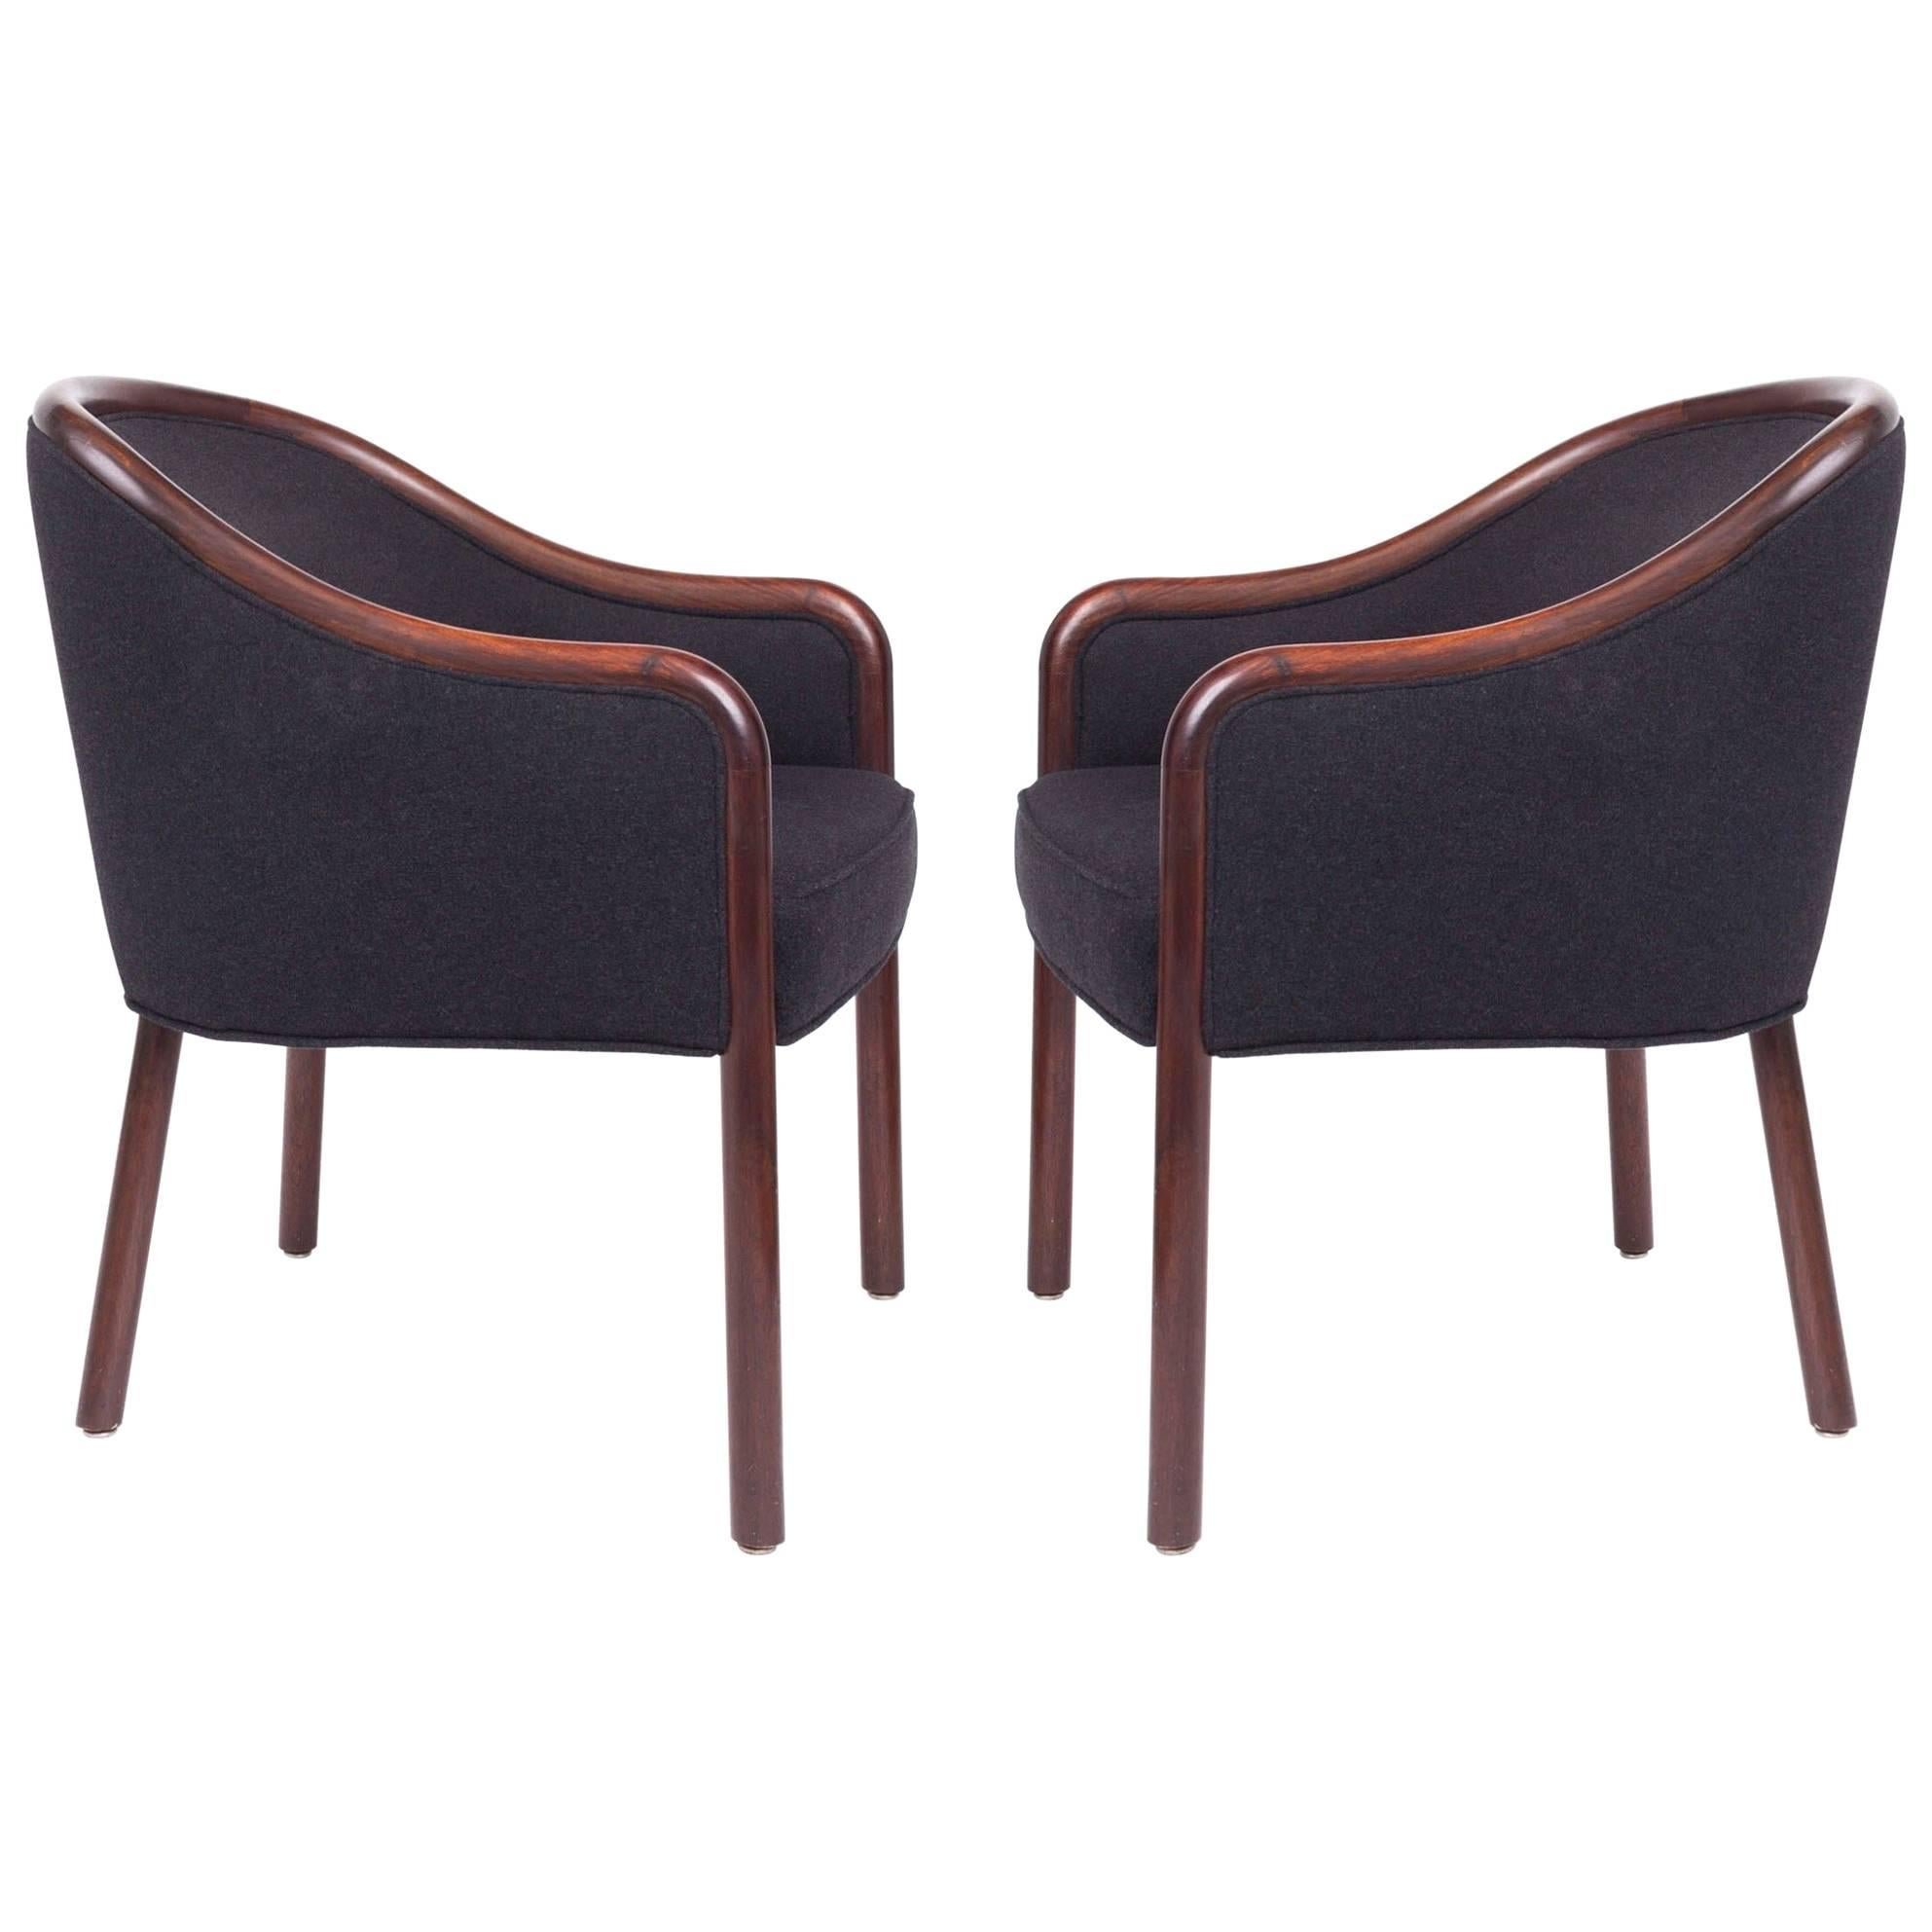 Pair of Shapely Upholstered Bentwood Club Chairs by Ward Bennett, 1960's